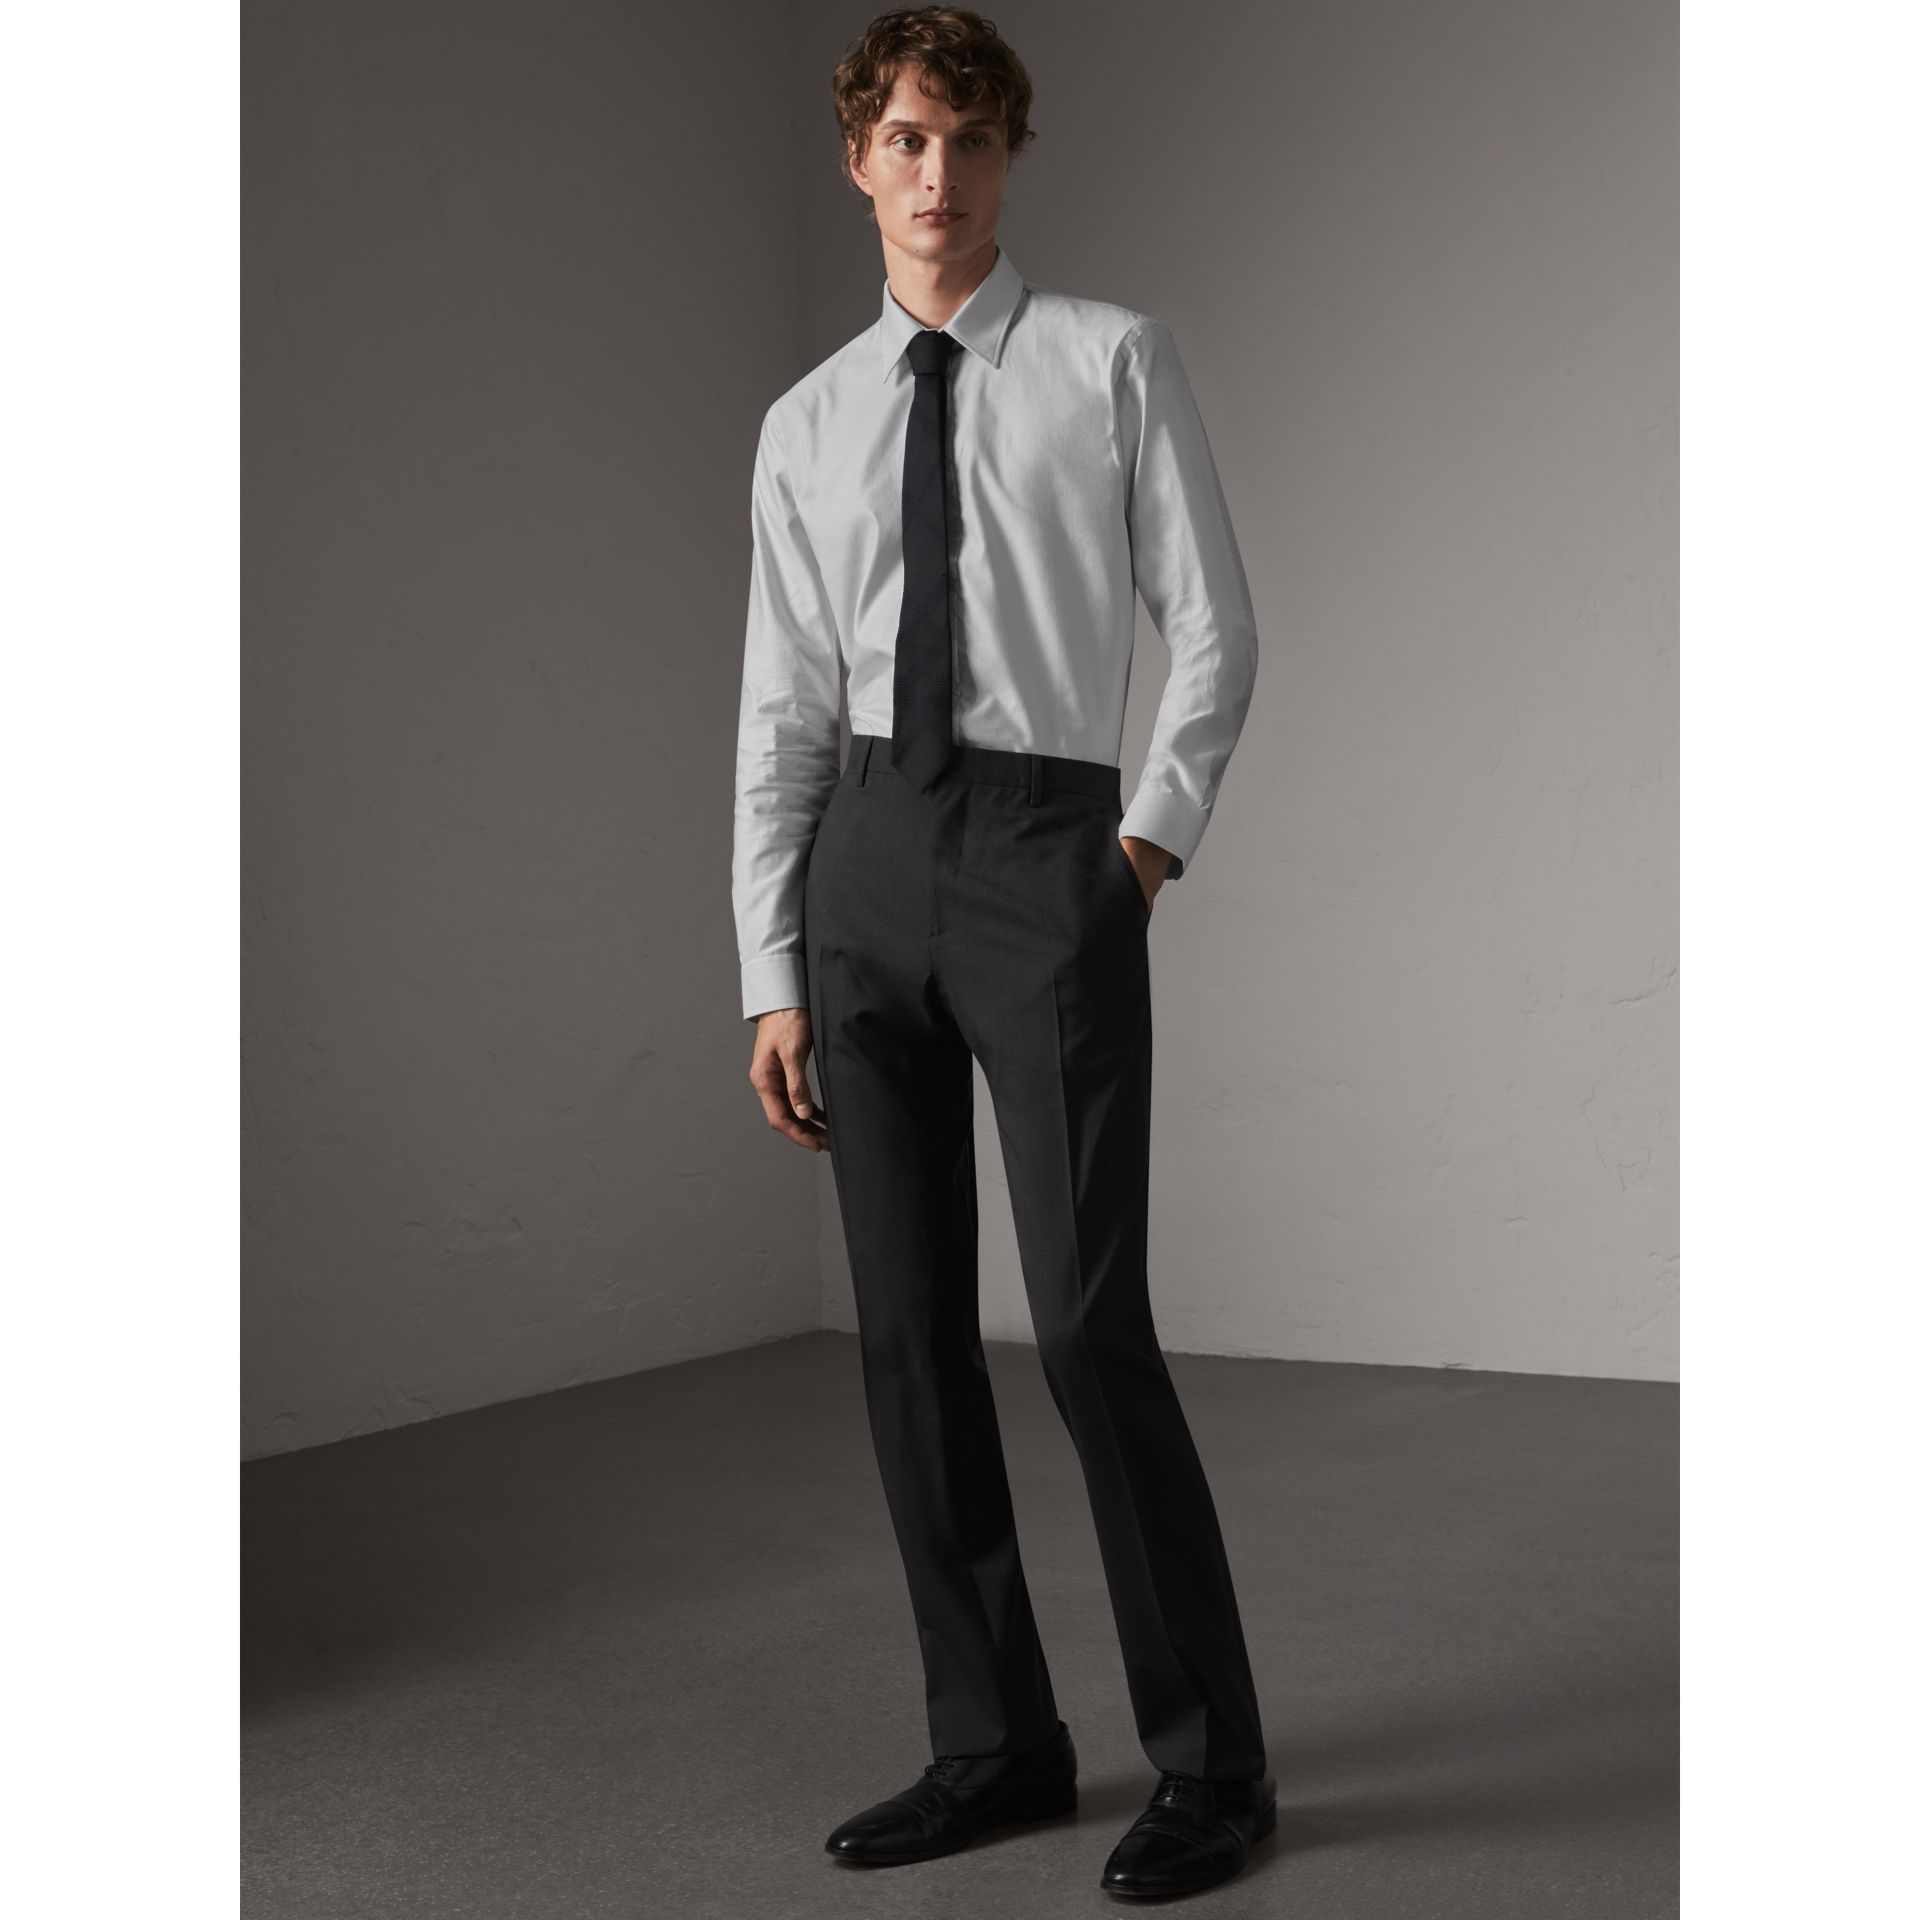 Pantalon de coupe moderne en laine (Anthracite) - Homme | Burberry - photo de la galerie 0